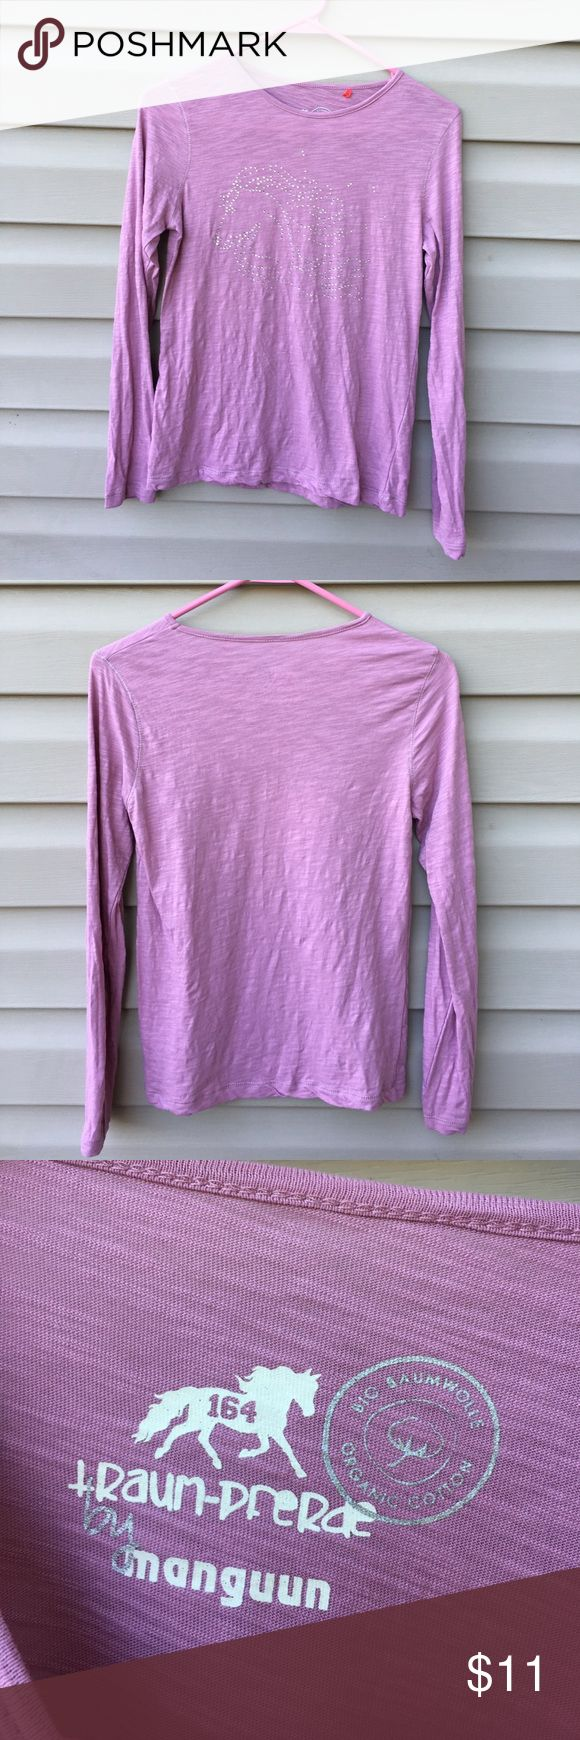 Manguun girls long sleeve purple shirt Nice girls long sleeve purple shirt, with horse and mane in bling on front. 100% cotton. No stains or holes manguun Shirts & Tops Tees - Long Sleeve